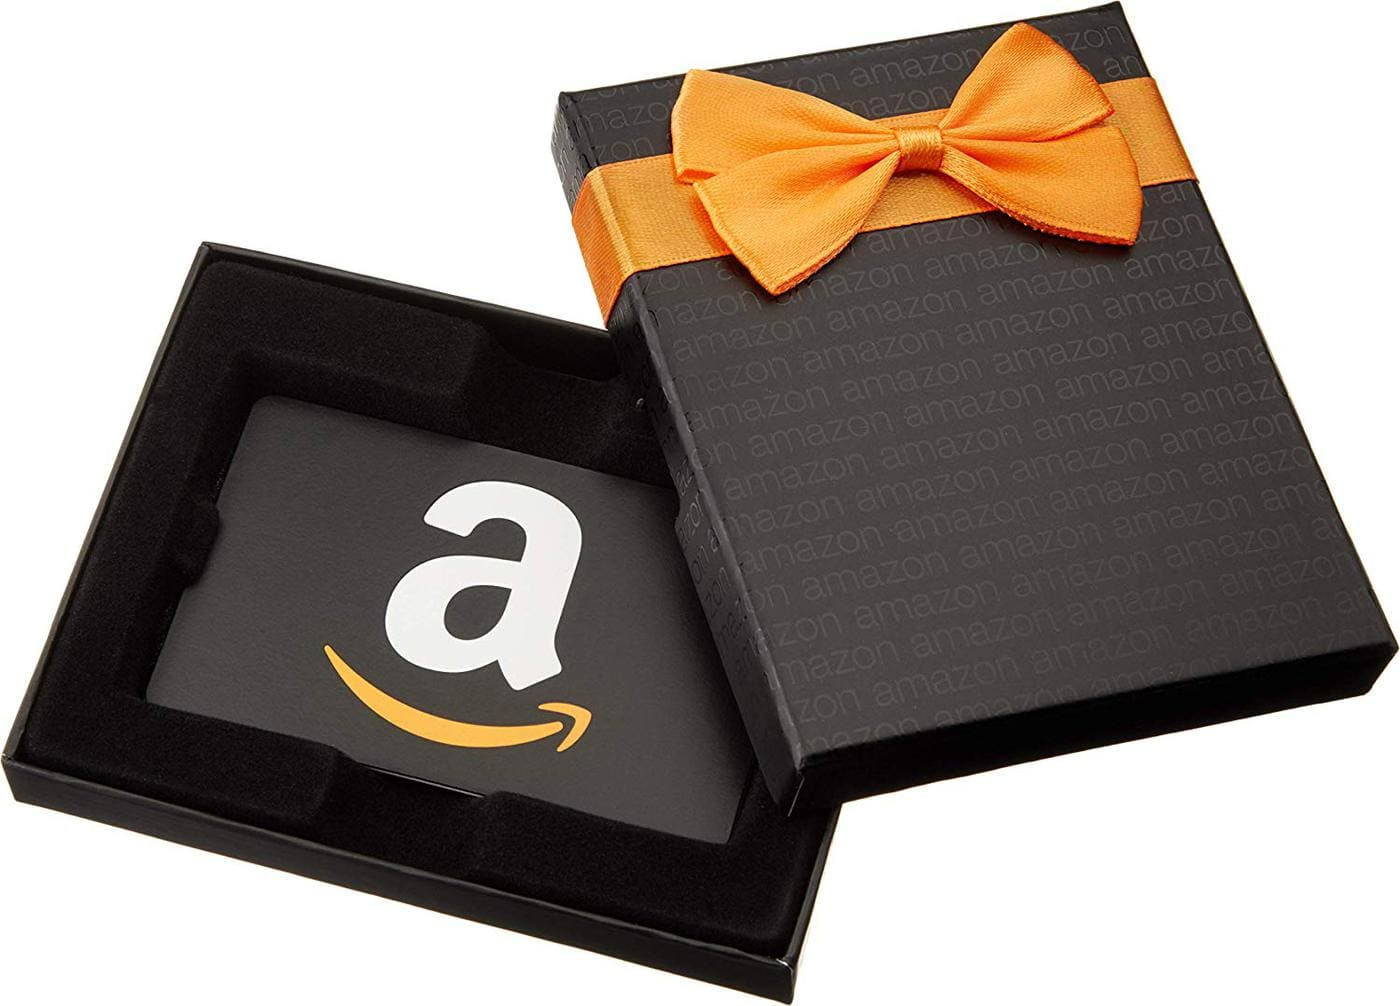 photo of amazon gift card in gift box